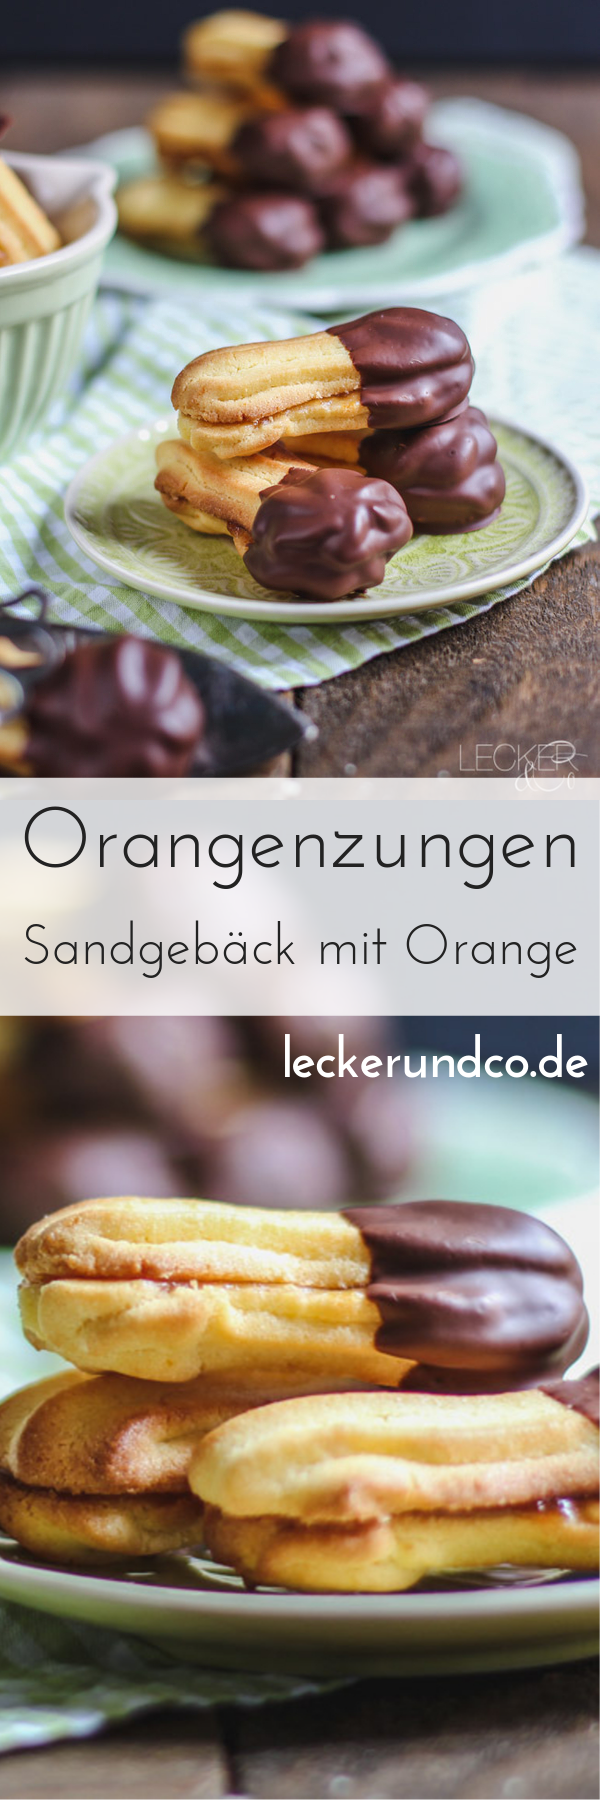 Photo of Orange tongues | Pastries with orange | LECKER & Co | Food blog from Nuremberg